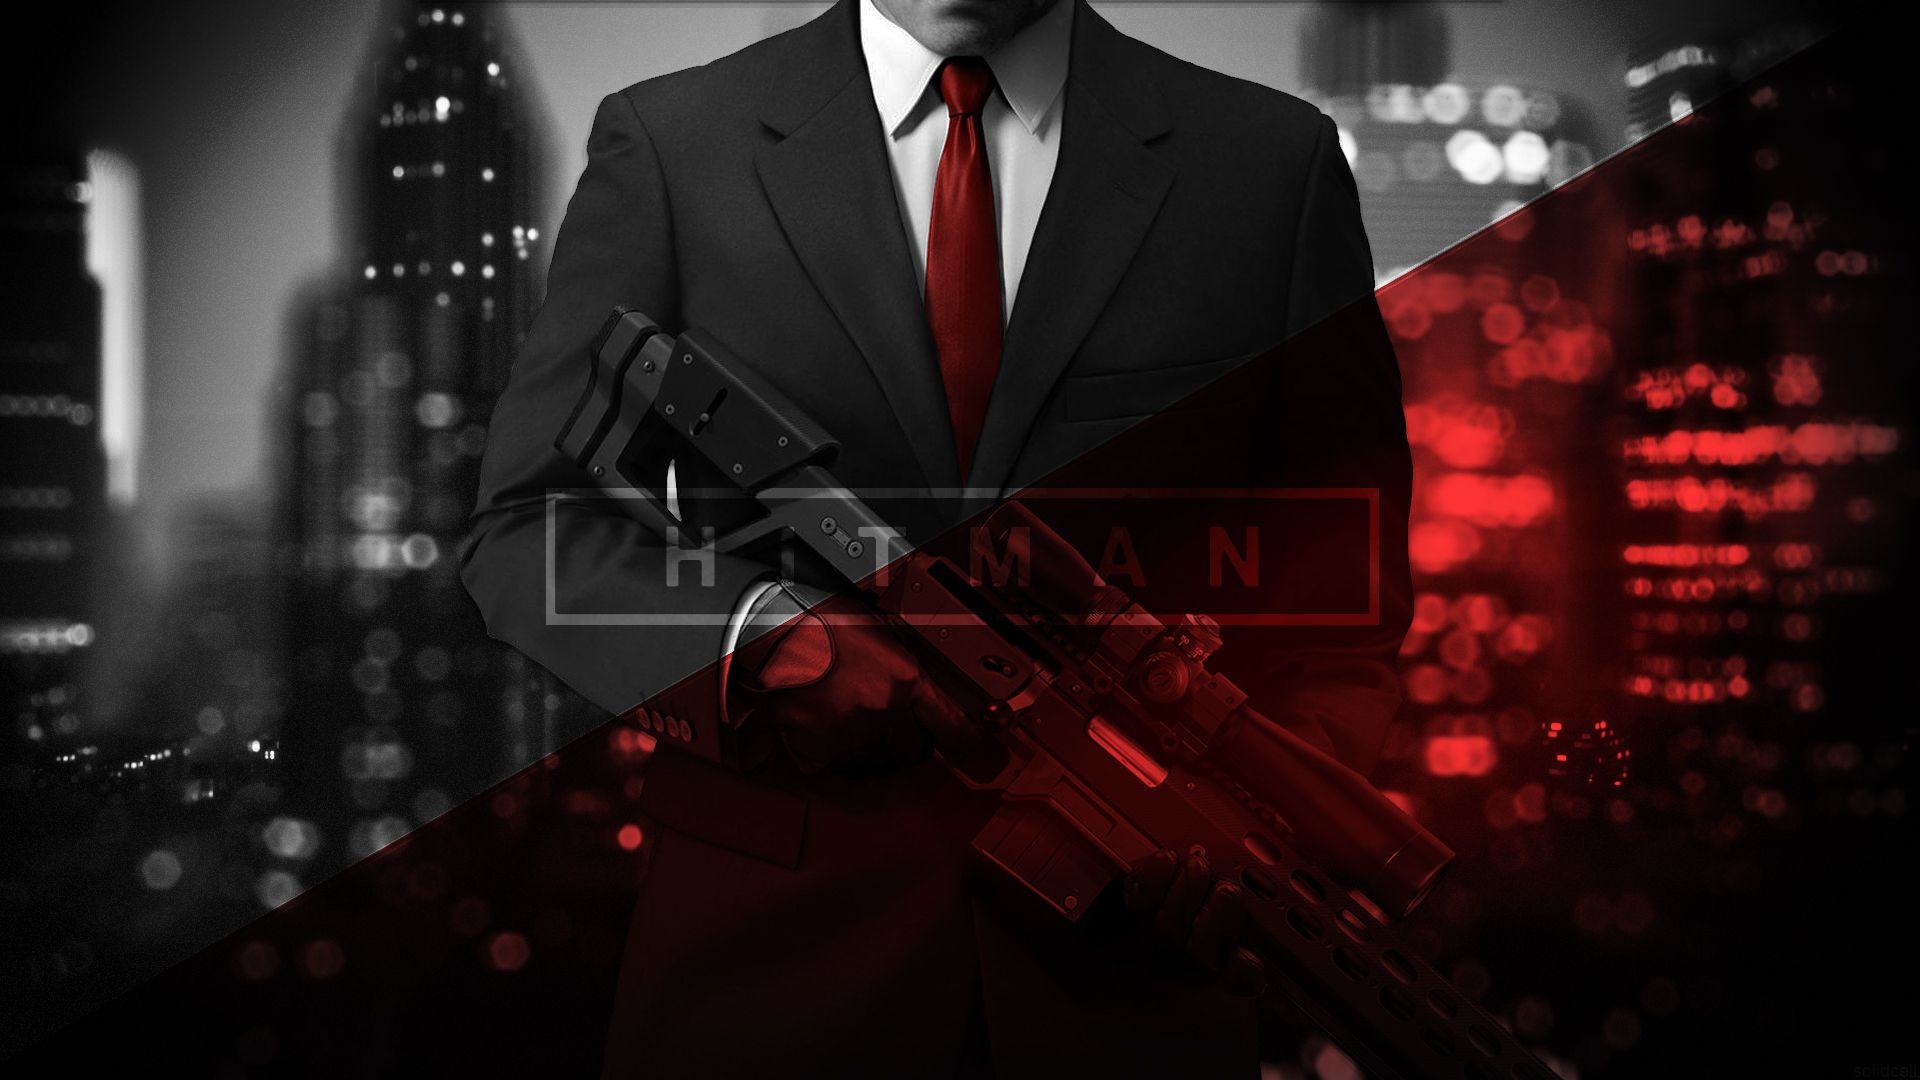 Hitman Wallpaper Mobile 6f4 S Wallpaper Hd Beautiful Wallpapers Disney Phone Wallpaper